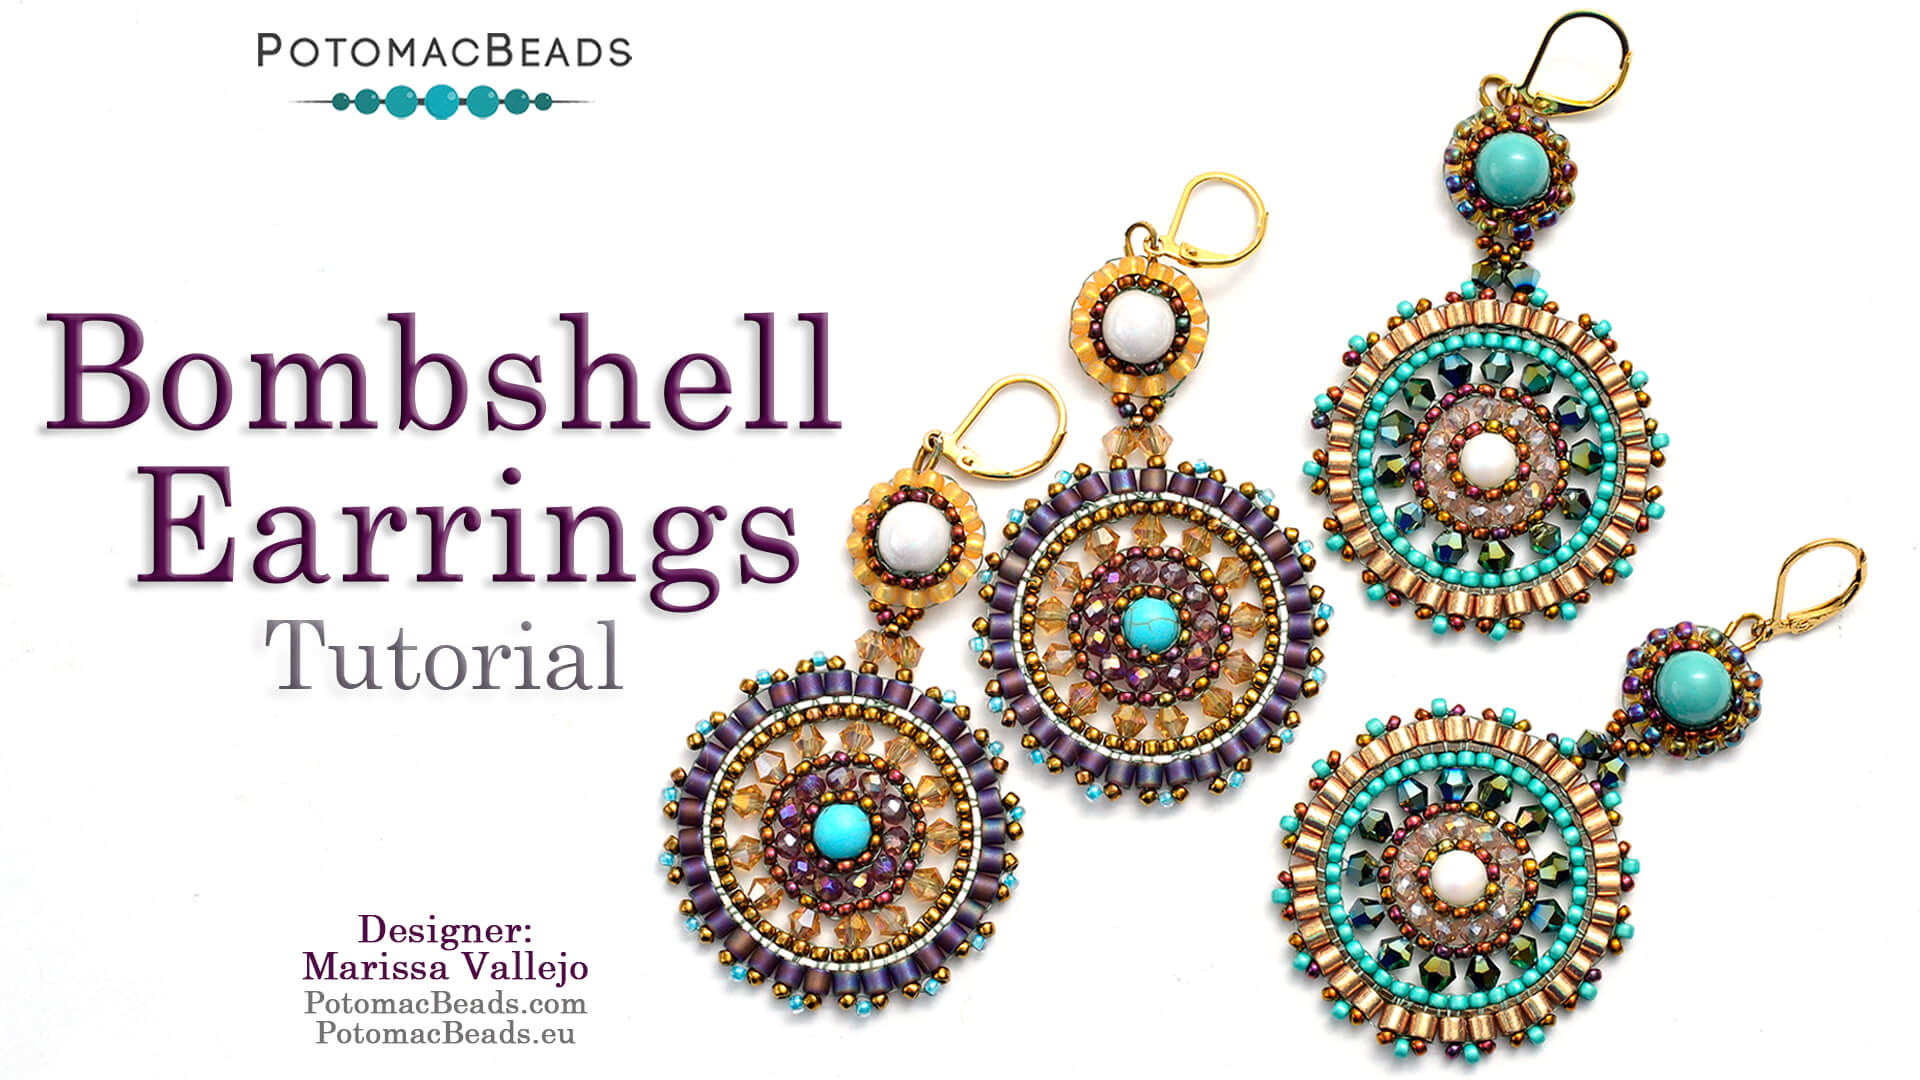 How to Bead Jewelry / Videos Sorted by Beads / Pearl Videos (Czech, Freshwater, Potomac Pearls) / Bombshell Earrings Tutorial